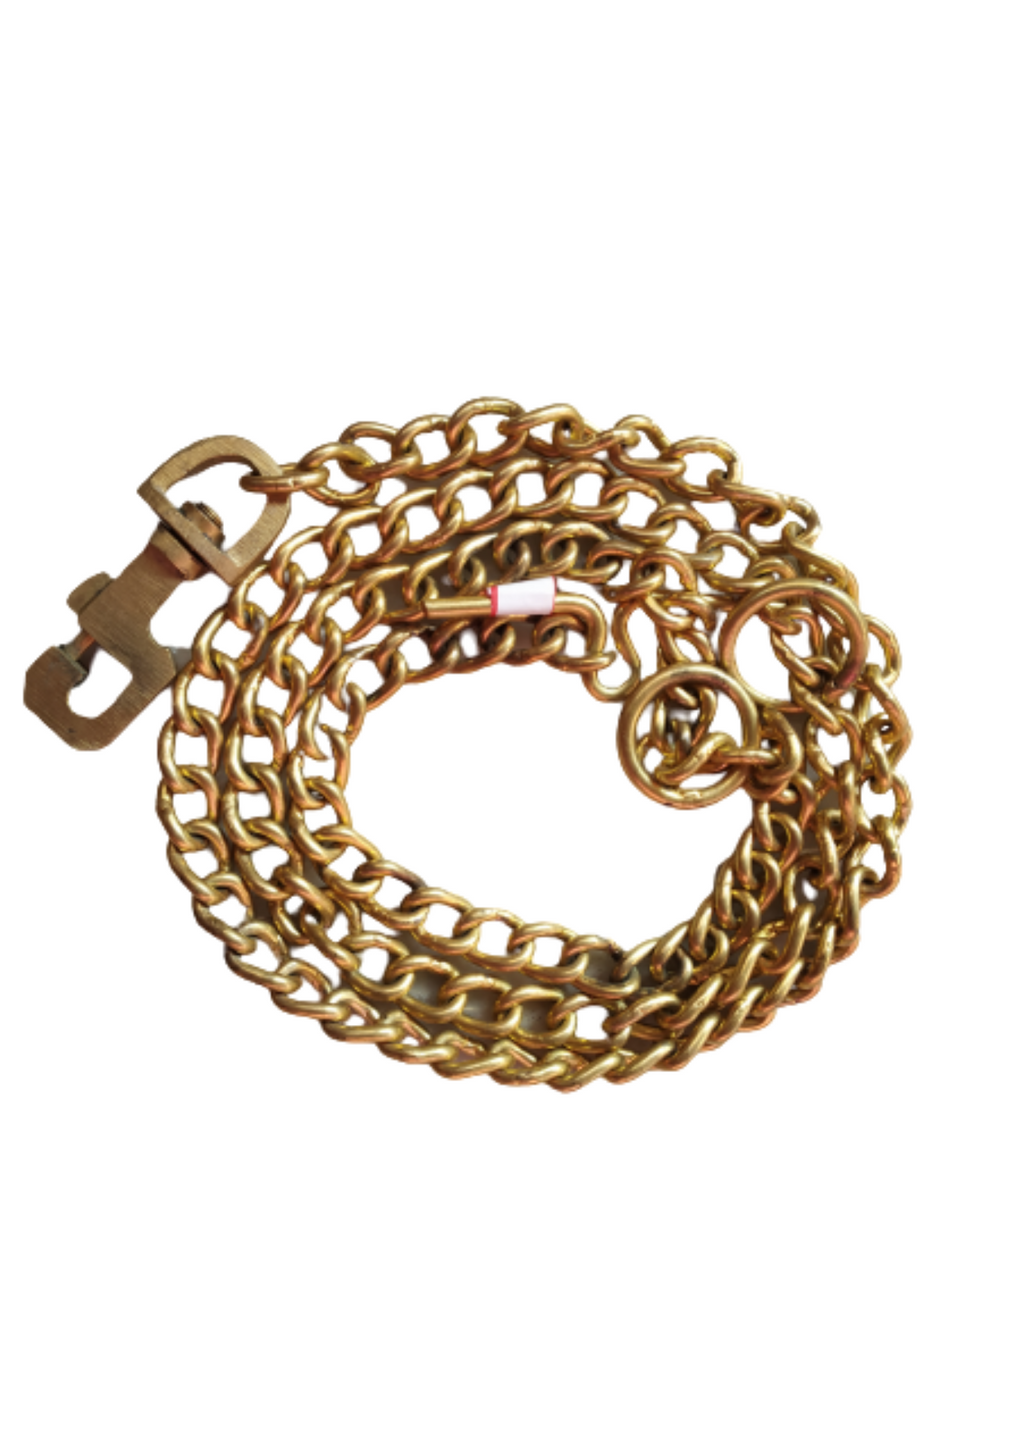 Super Heavy Weight Dog Brass Leash for Giant & Large Breeds